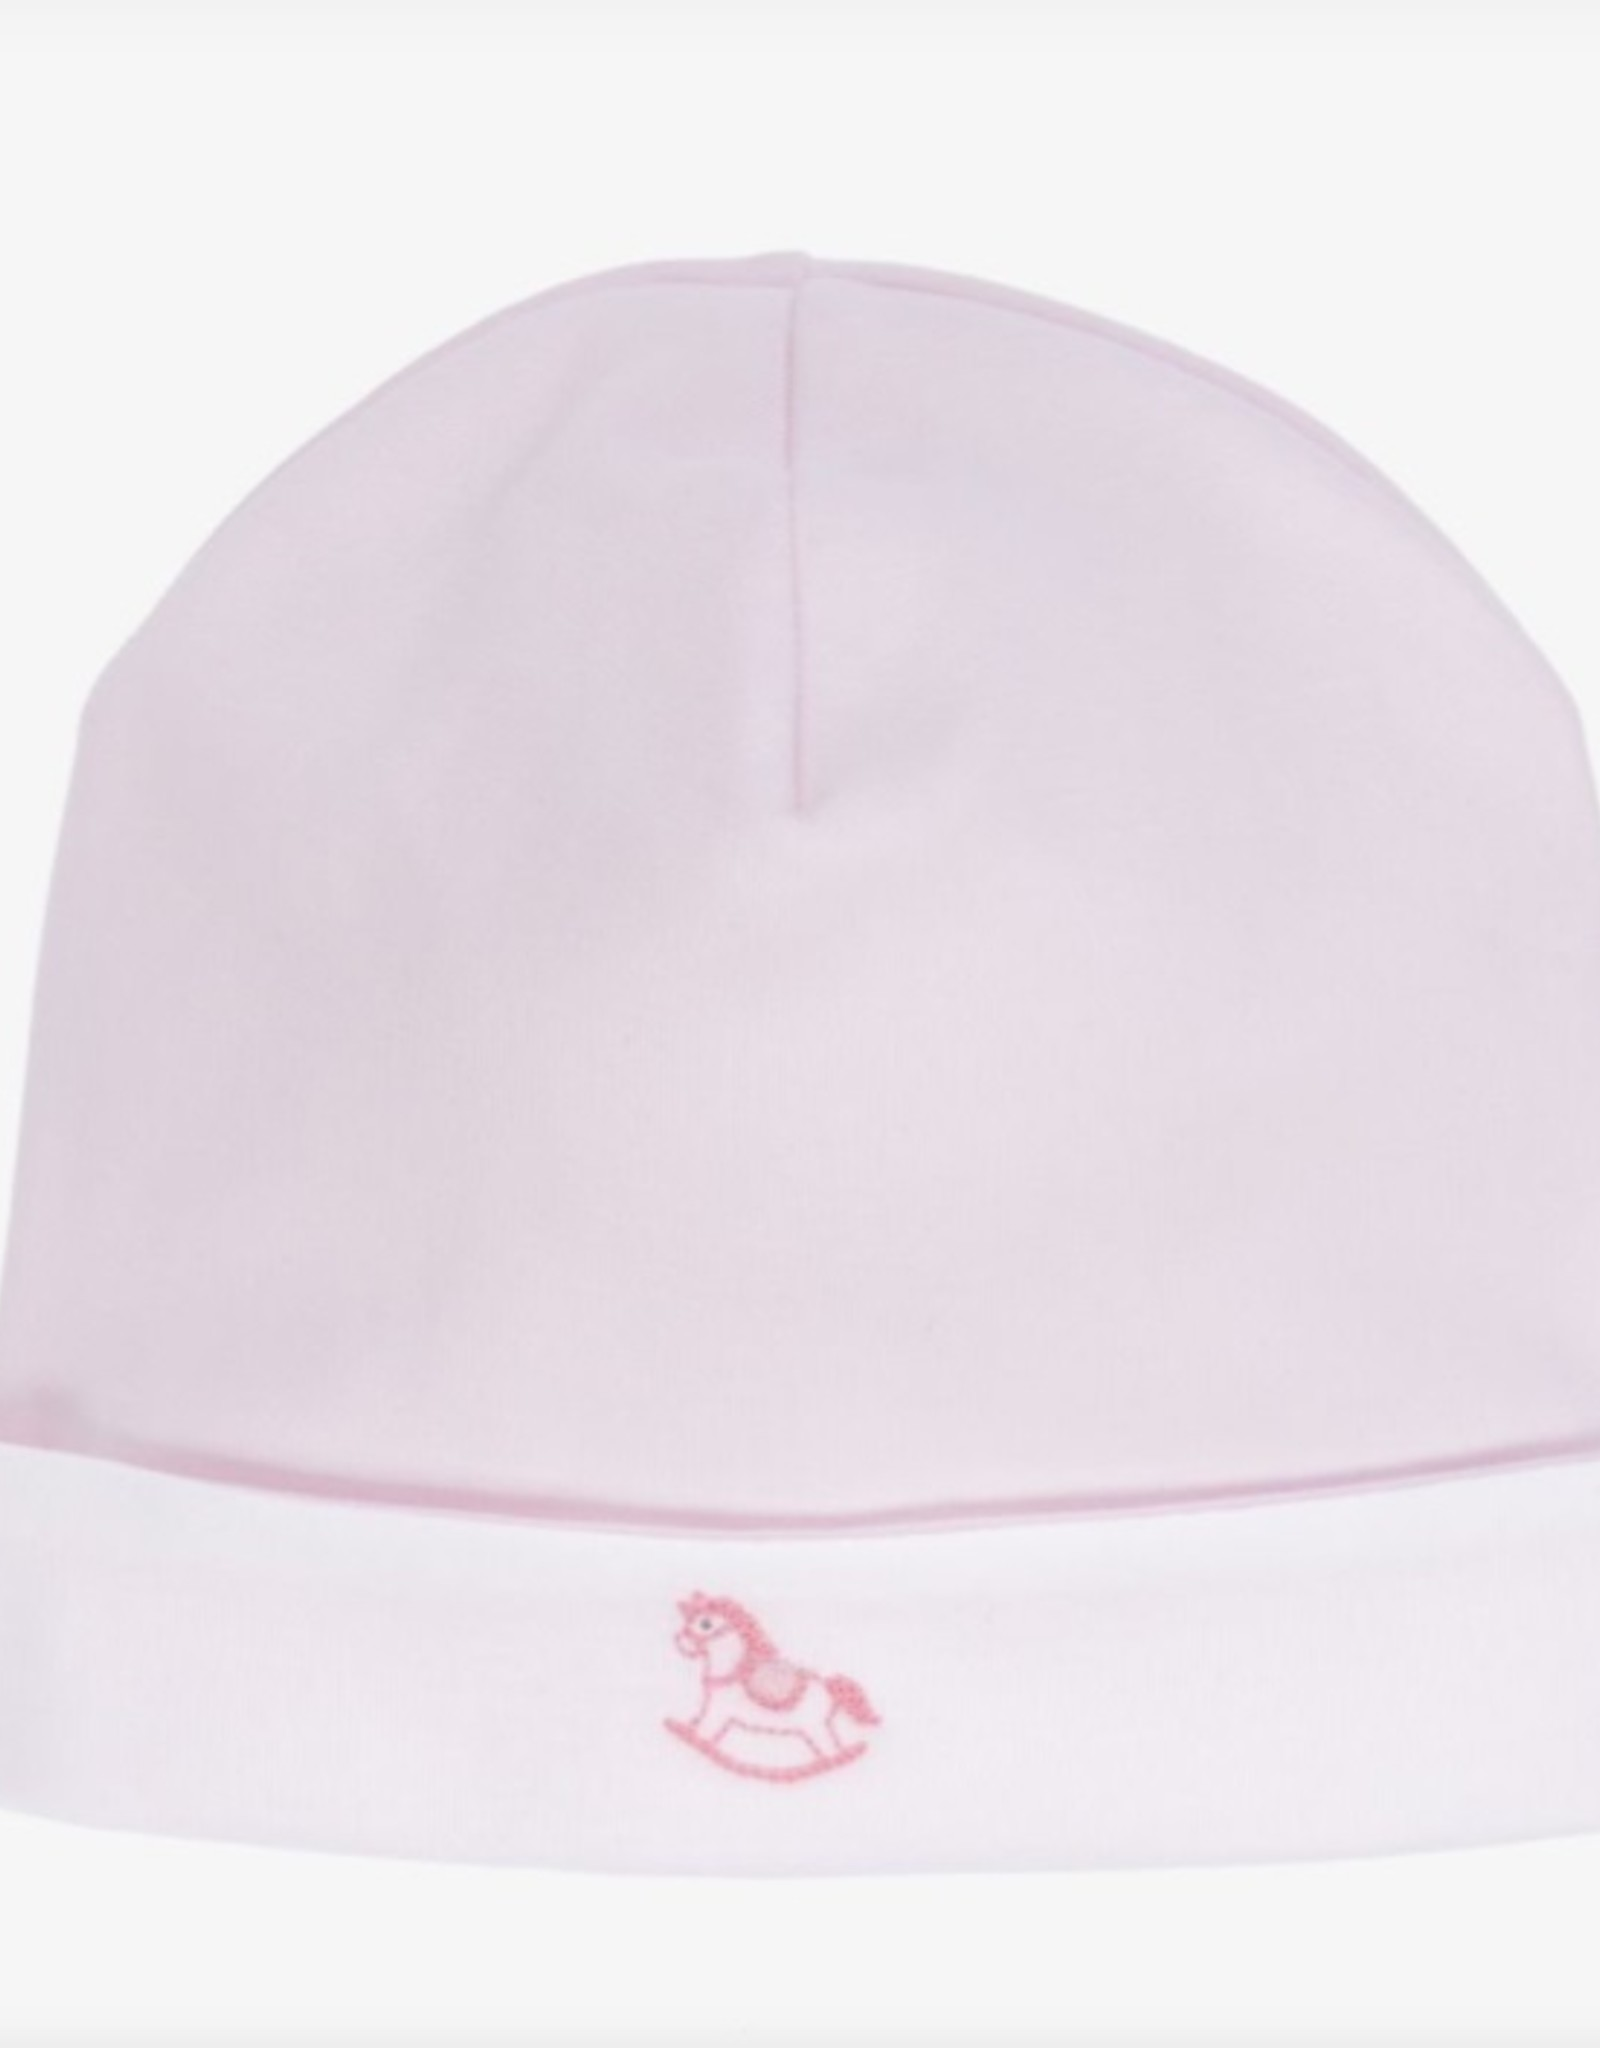 Kissy Kissy Pink Hat w/ Rocking Horse Embroidery